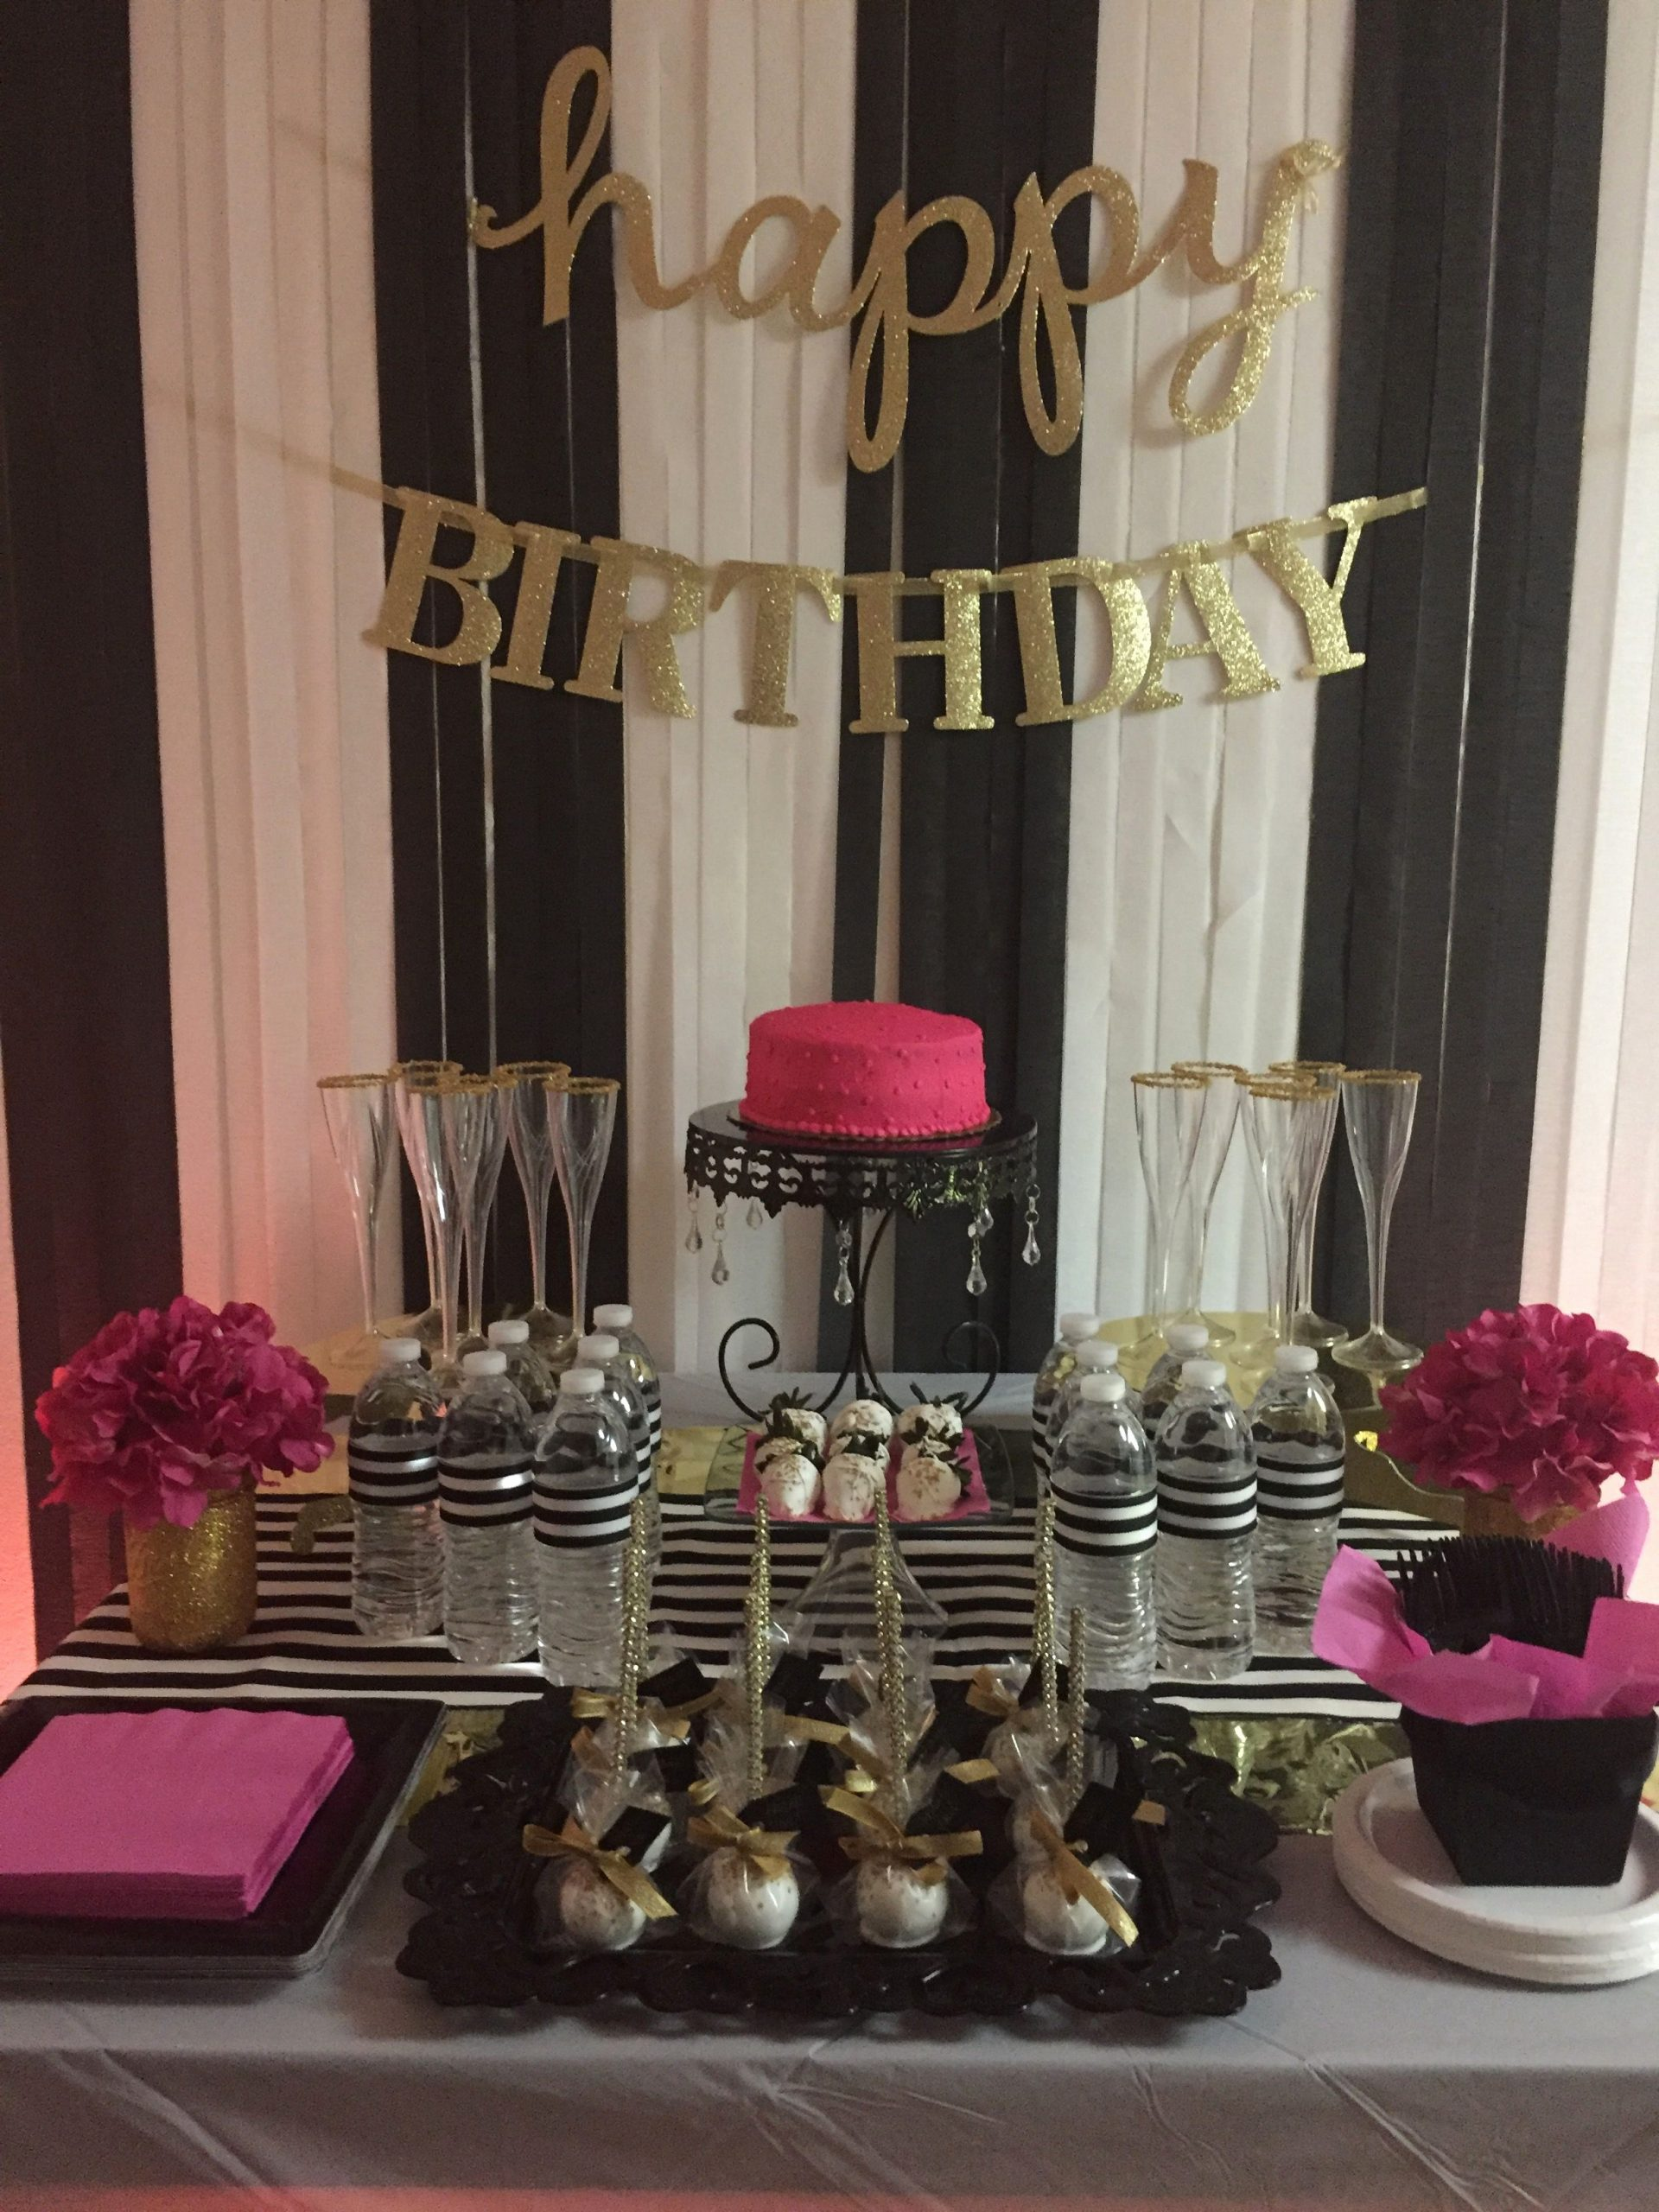 23rd Birthday Decoration Ideas Unique 40th Birthday Bash I Put to Her Kate Spade Inspired